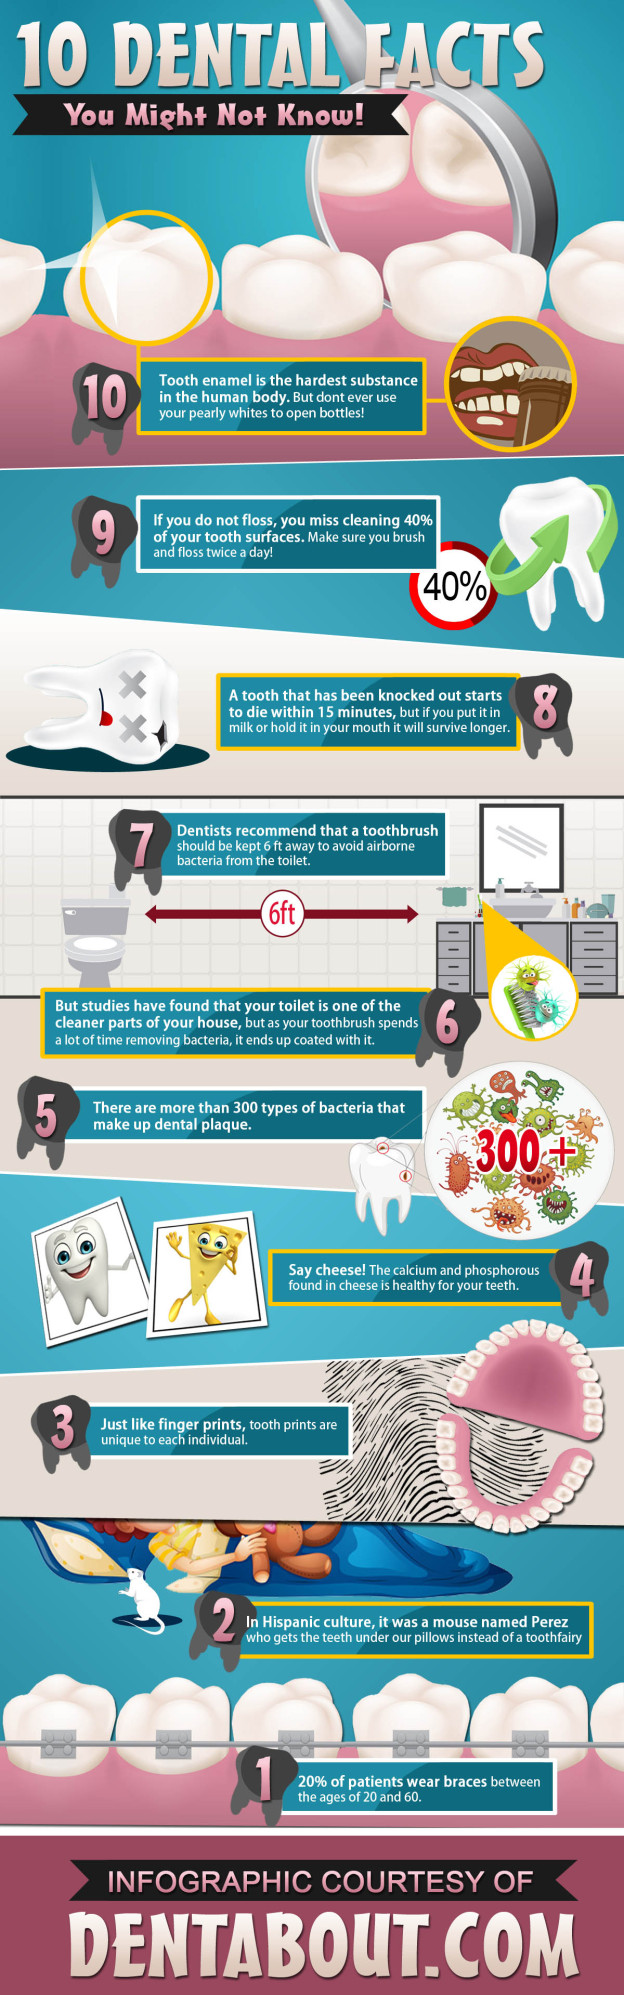 10 dental facts